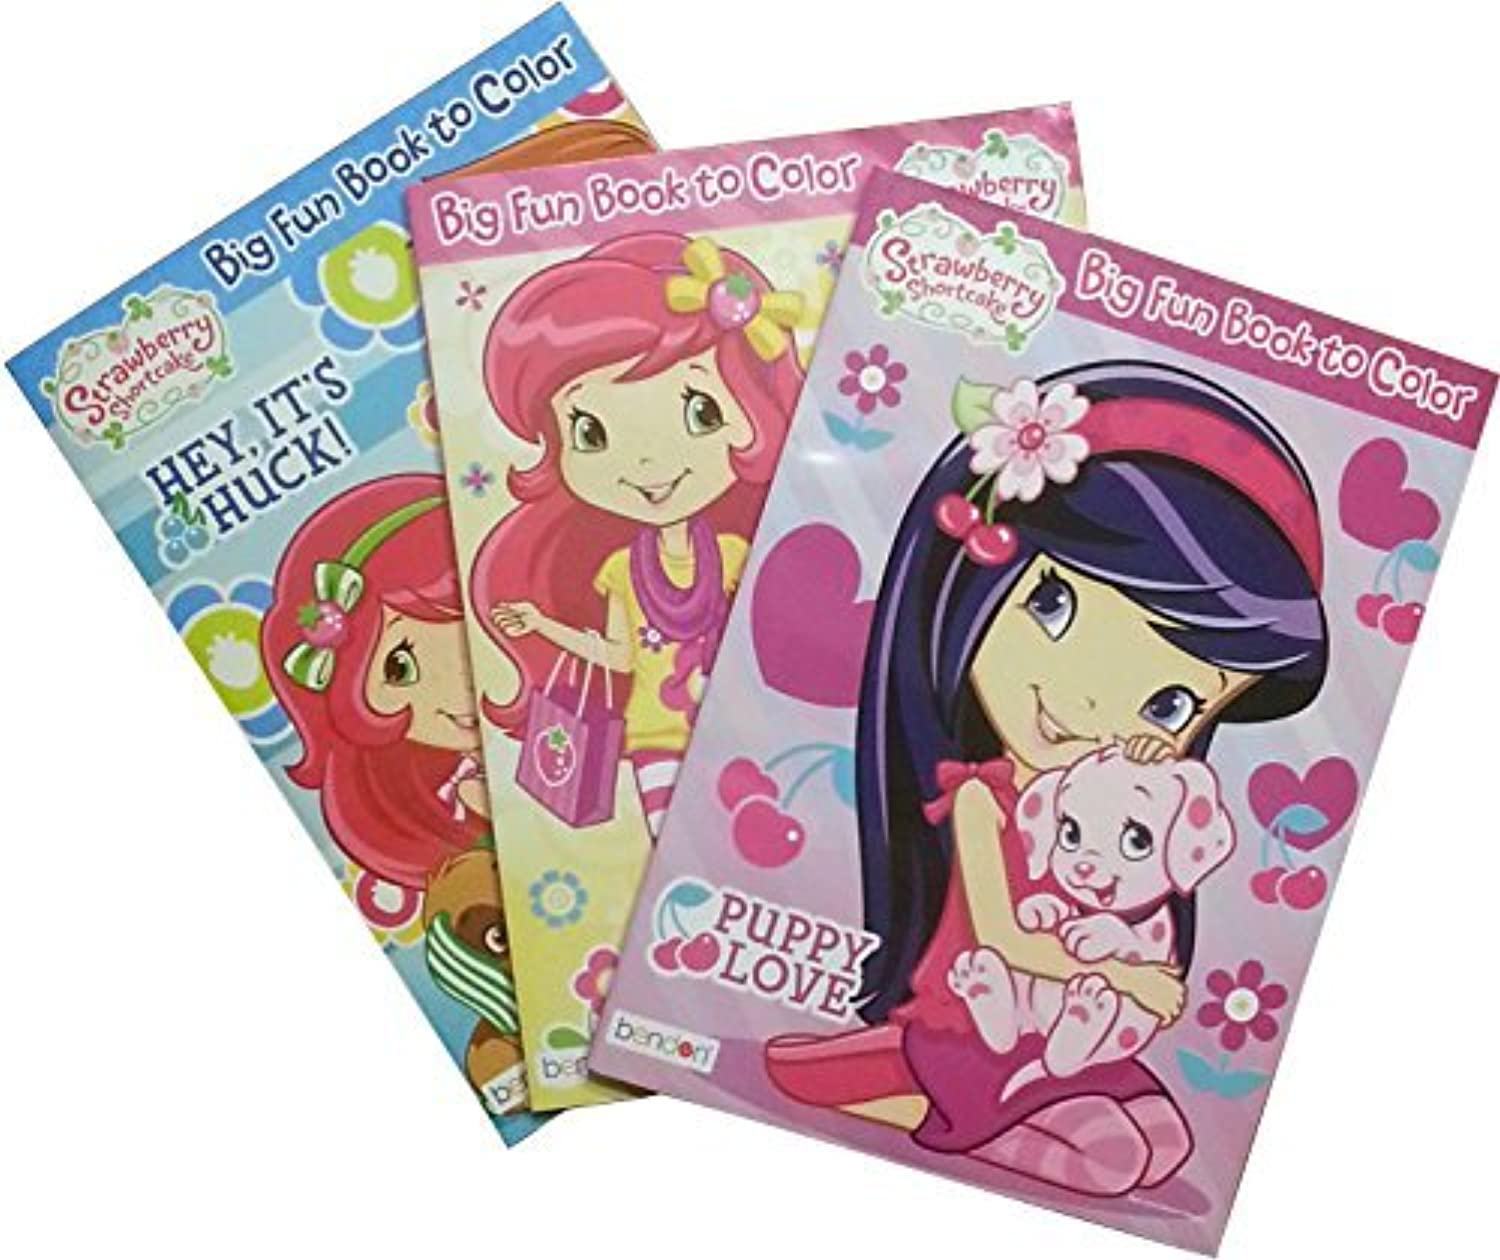 Strawberry Shortcake 3 Coloring Books, 48 Crayons, Bundle by Strawberry Shortcake [並行輸入品]